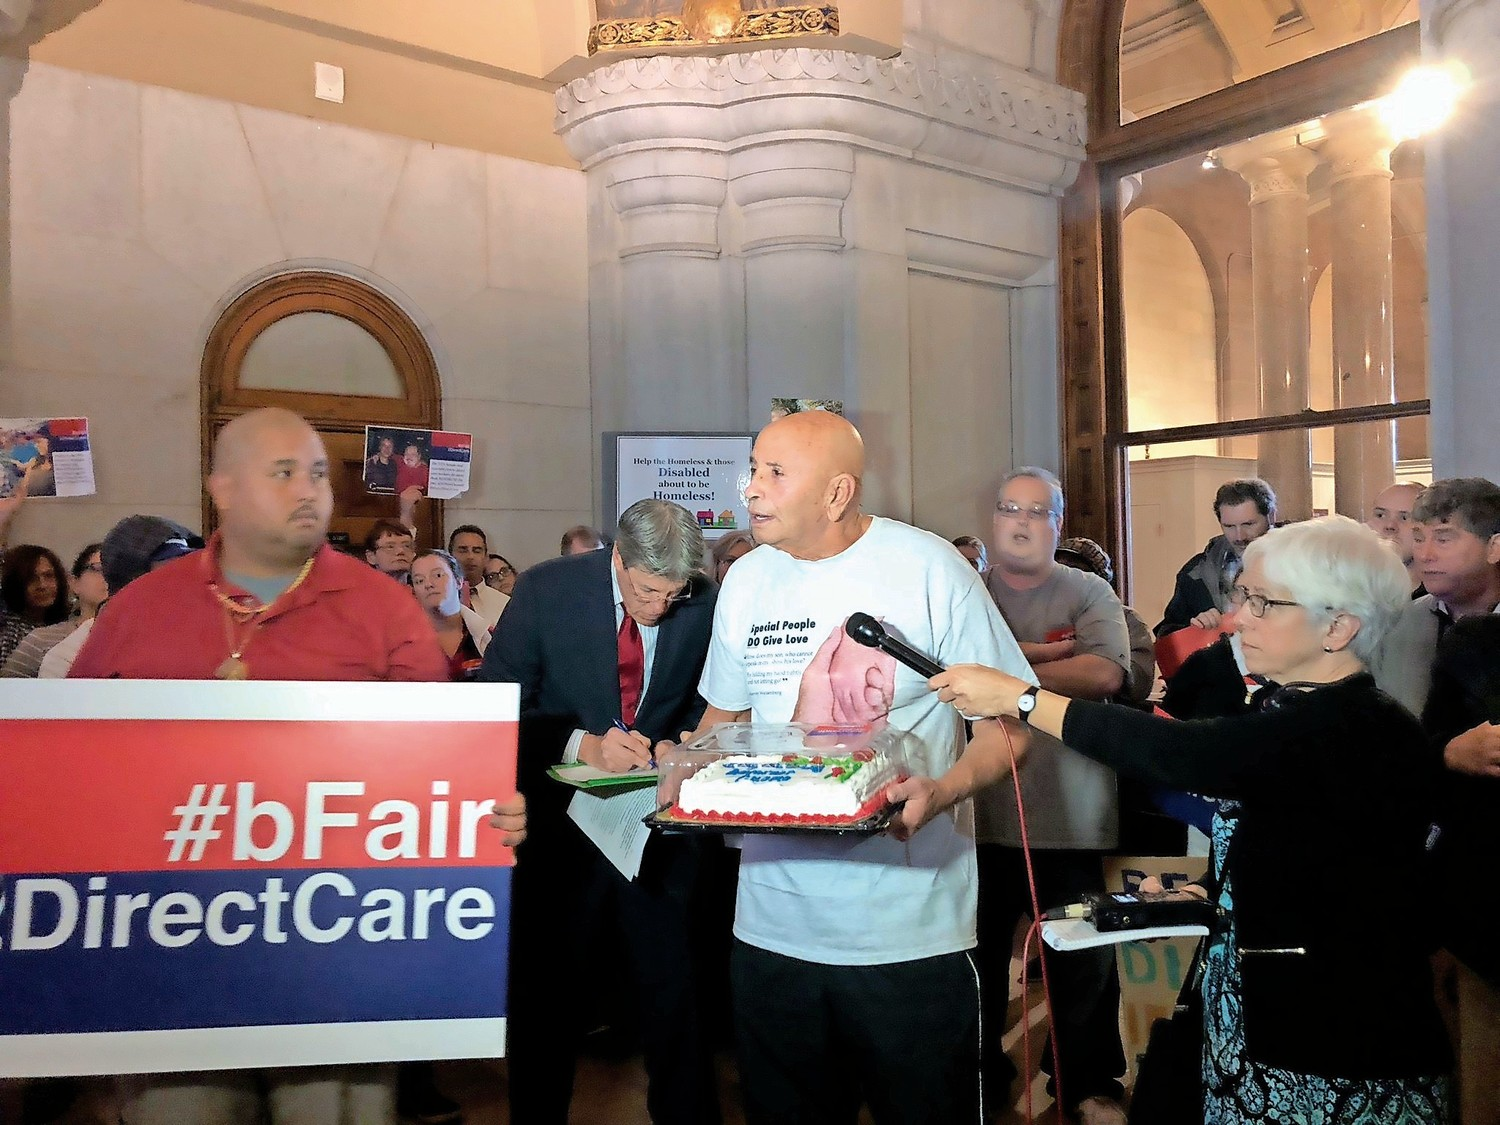 Former State Assemblyman Harvey Weisenberg led a rally in the state capitol on Dec. 6 to push legislators to speed up wage raises for those who care for people with disabilities.